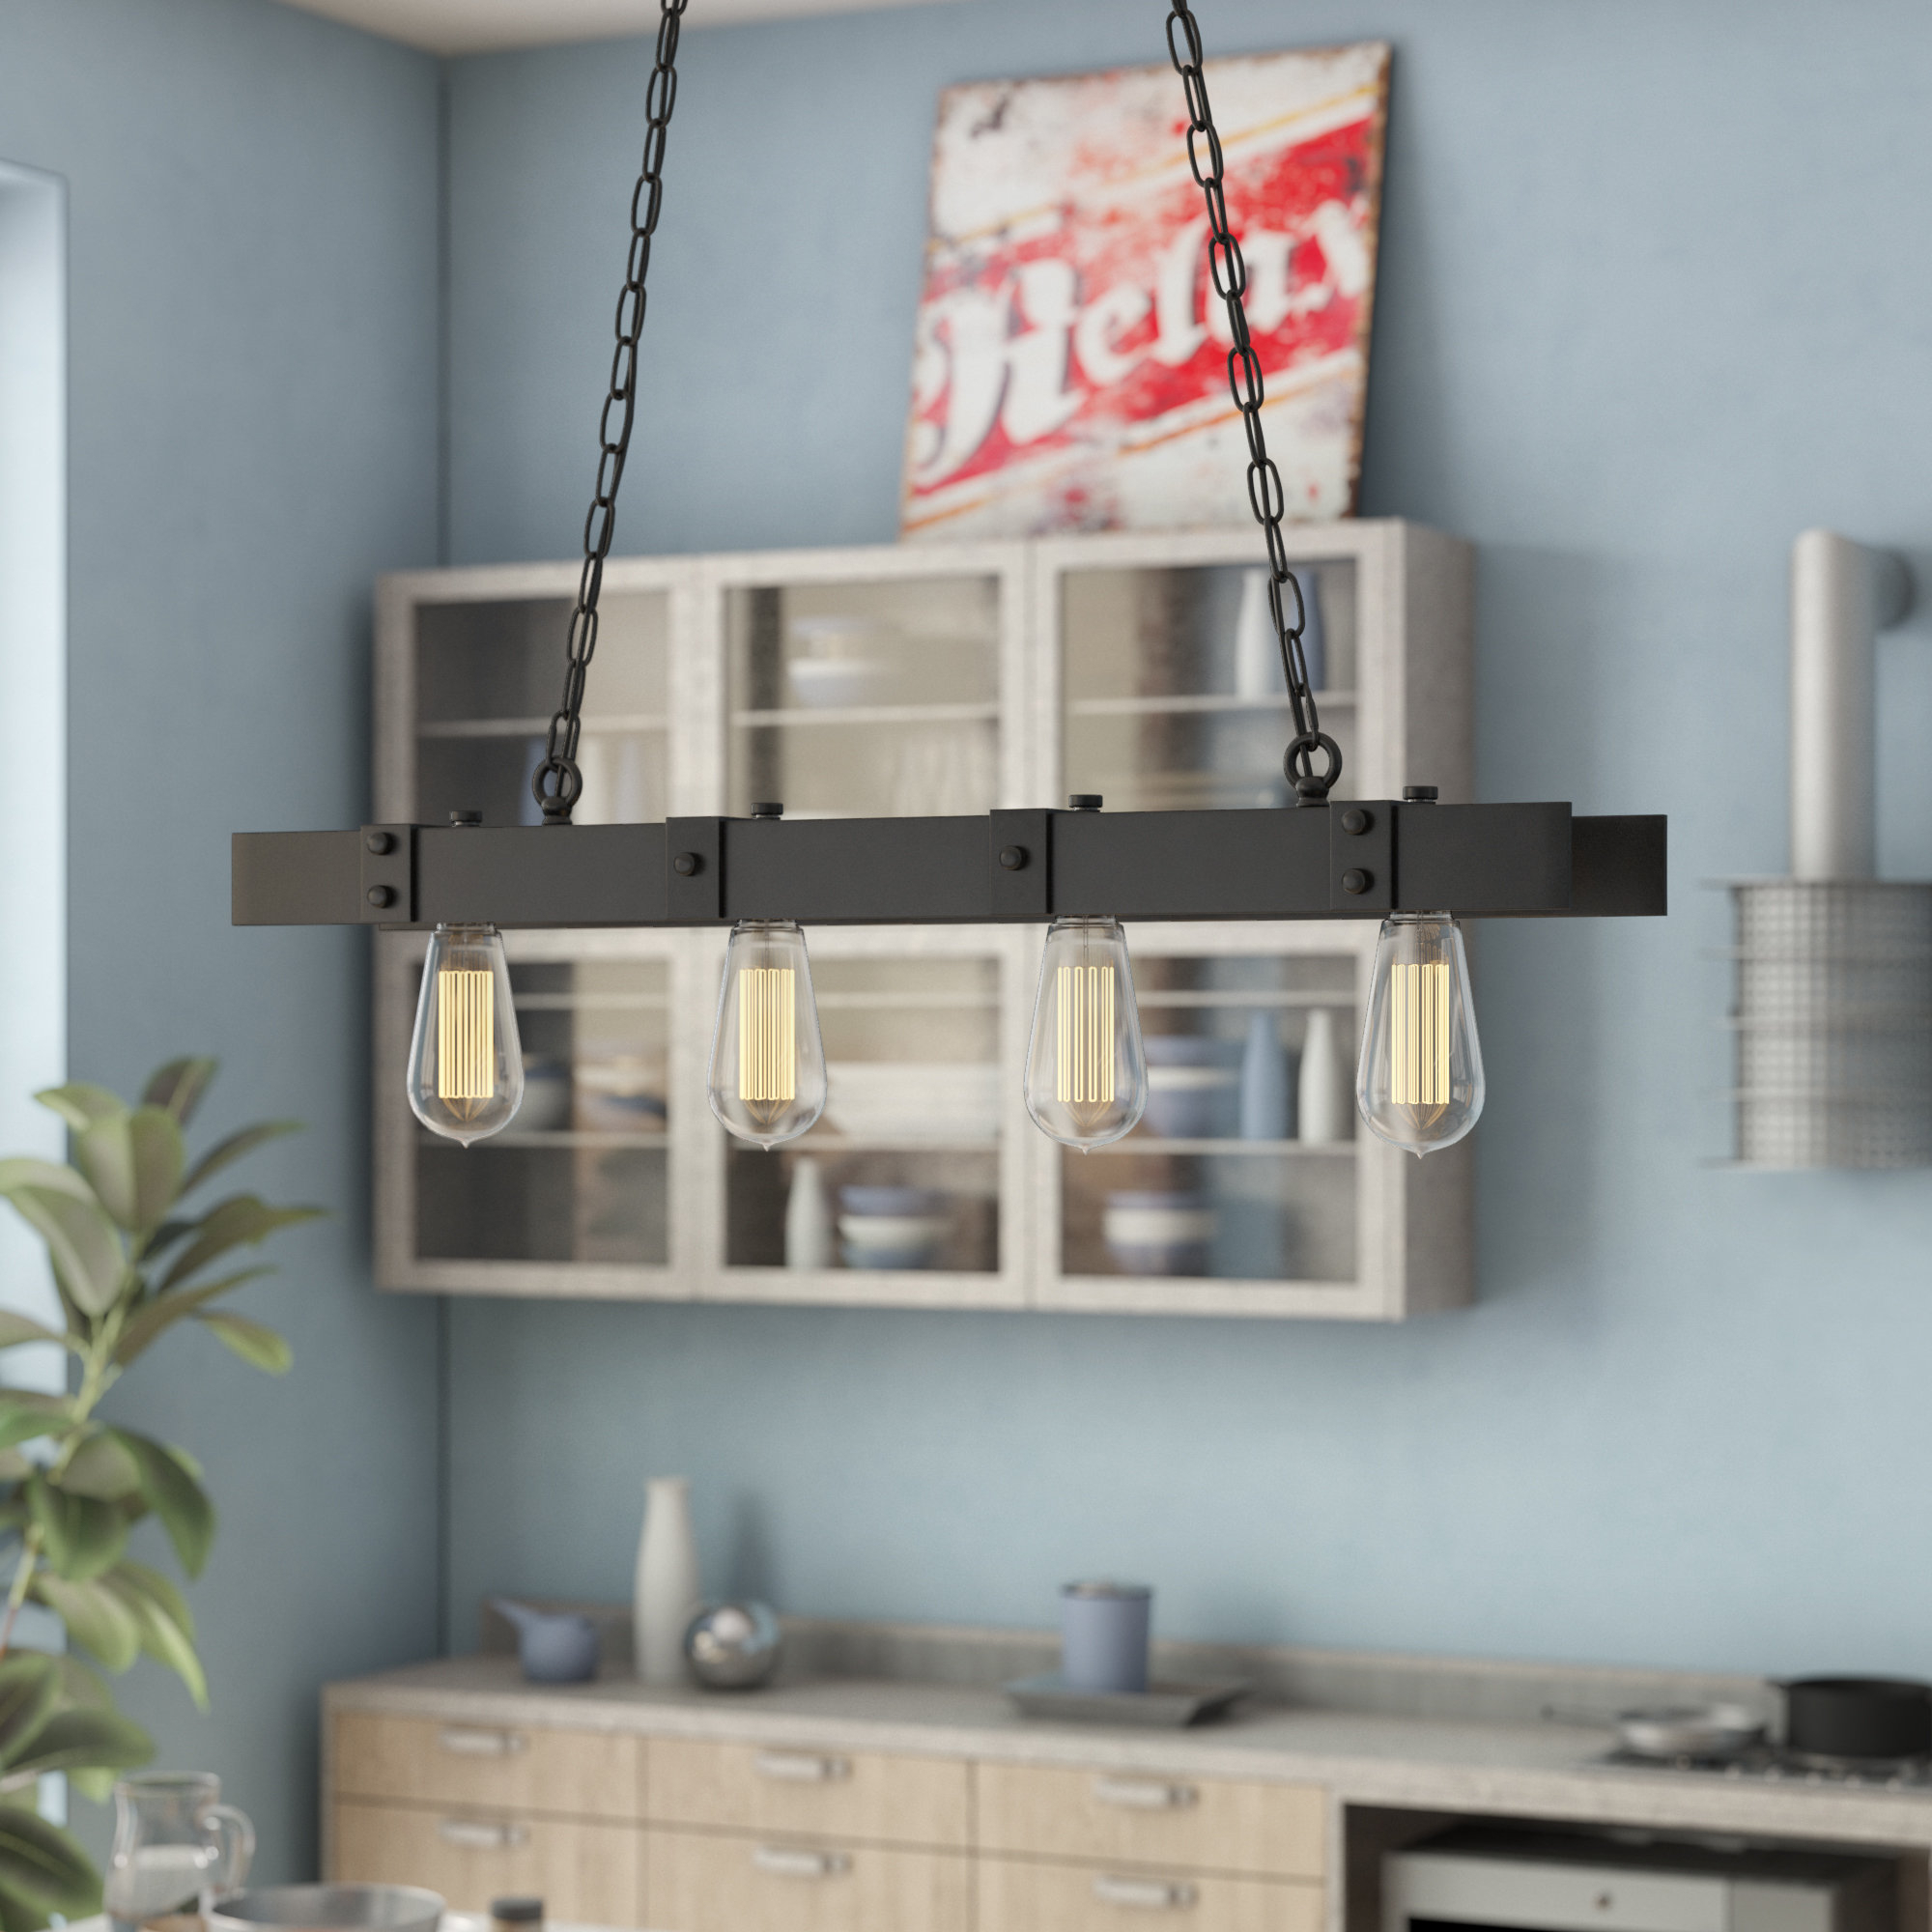 Kitchen Island Williston Forge Pendant Lighting You'll Love with regard to Schutt 4-Light Kitchen Island Pendants (Image 11 of 30)